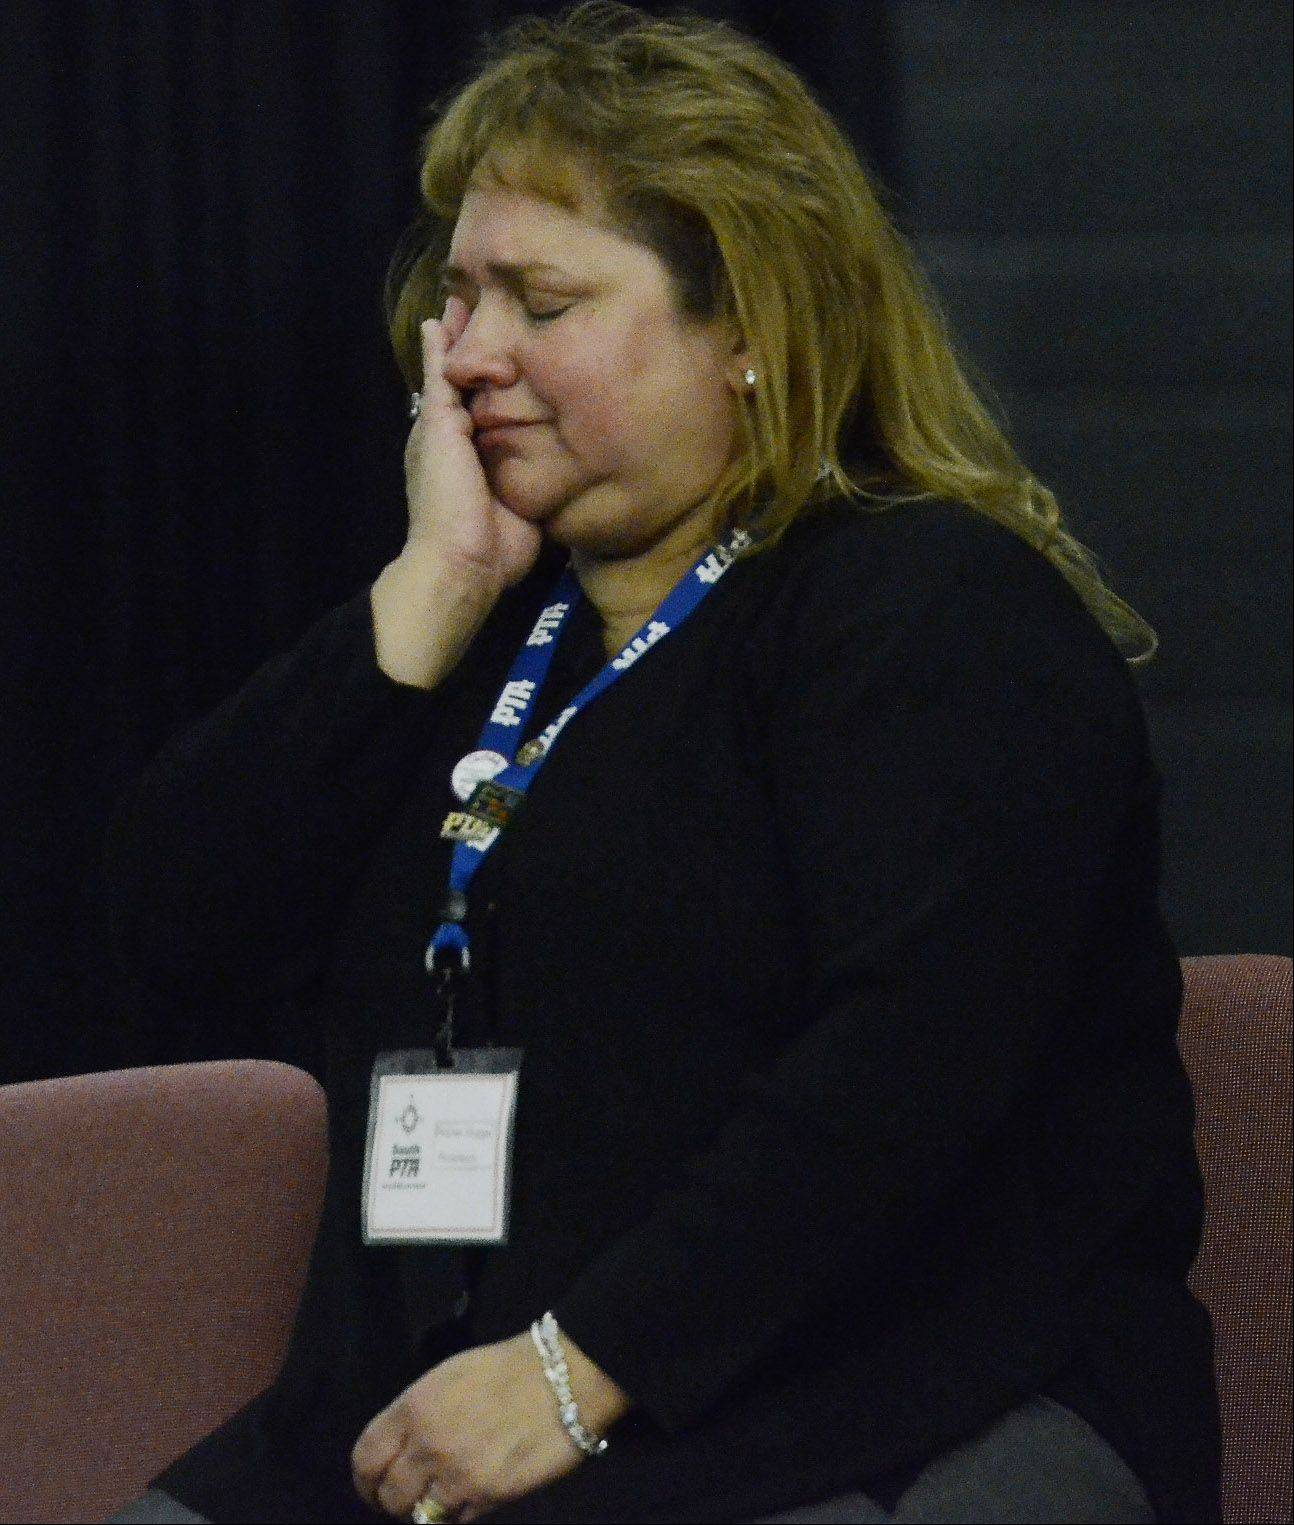 Denise Hoppe, PTA president and family friend, wipes away tears during a moving video featuring Alec Catherwood, who died in Afghanistan.